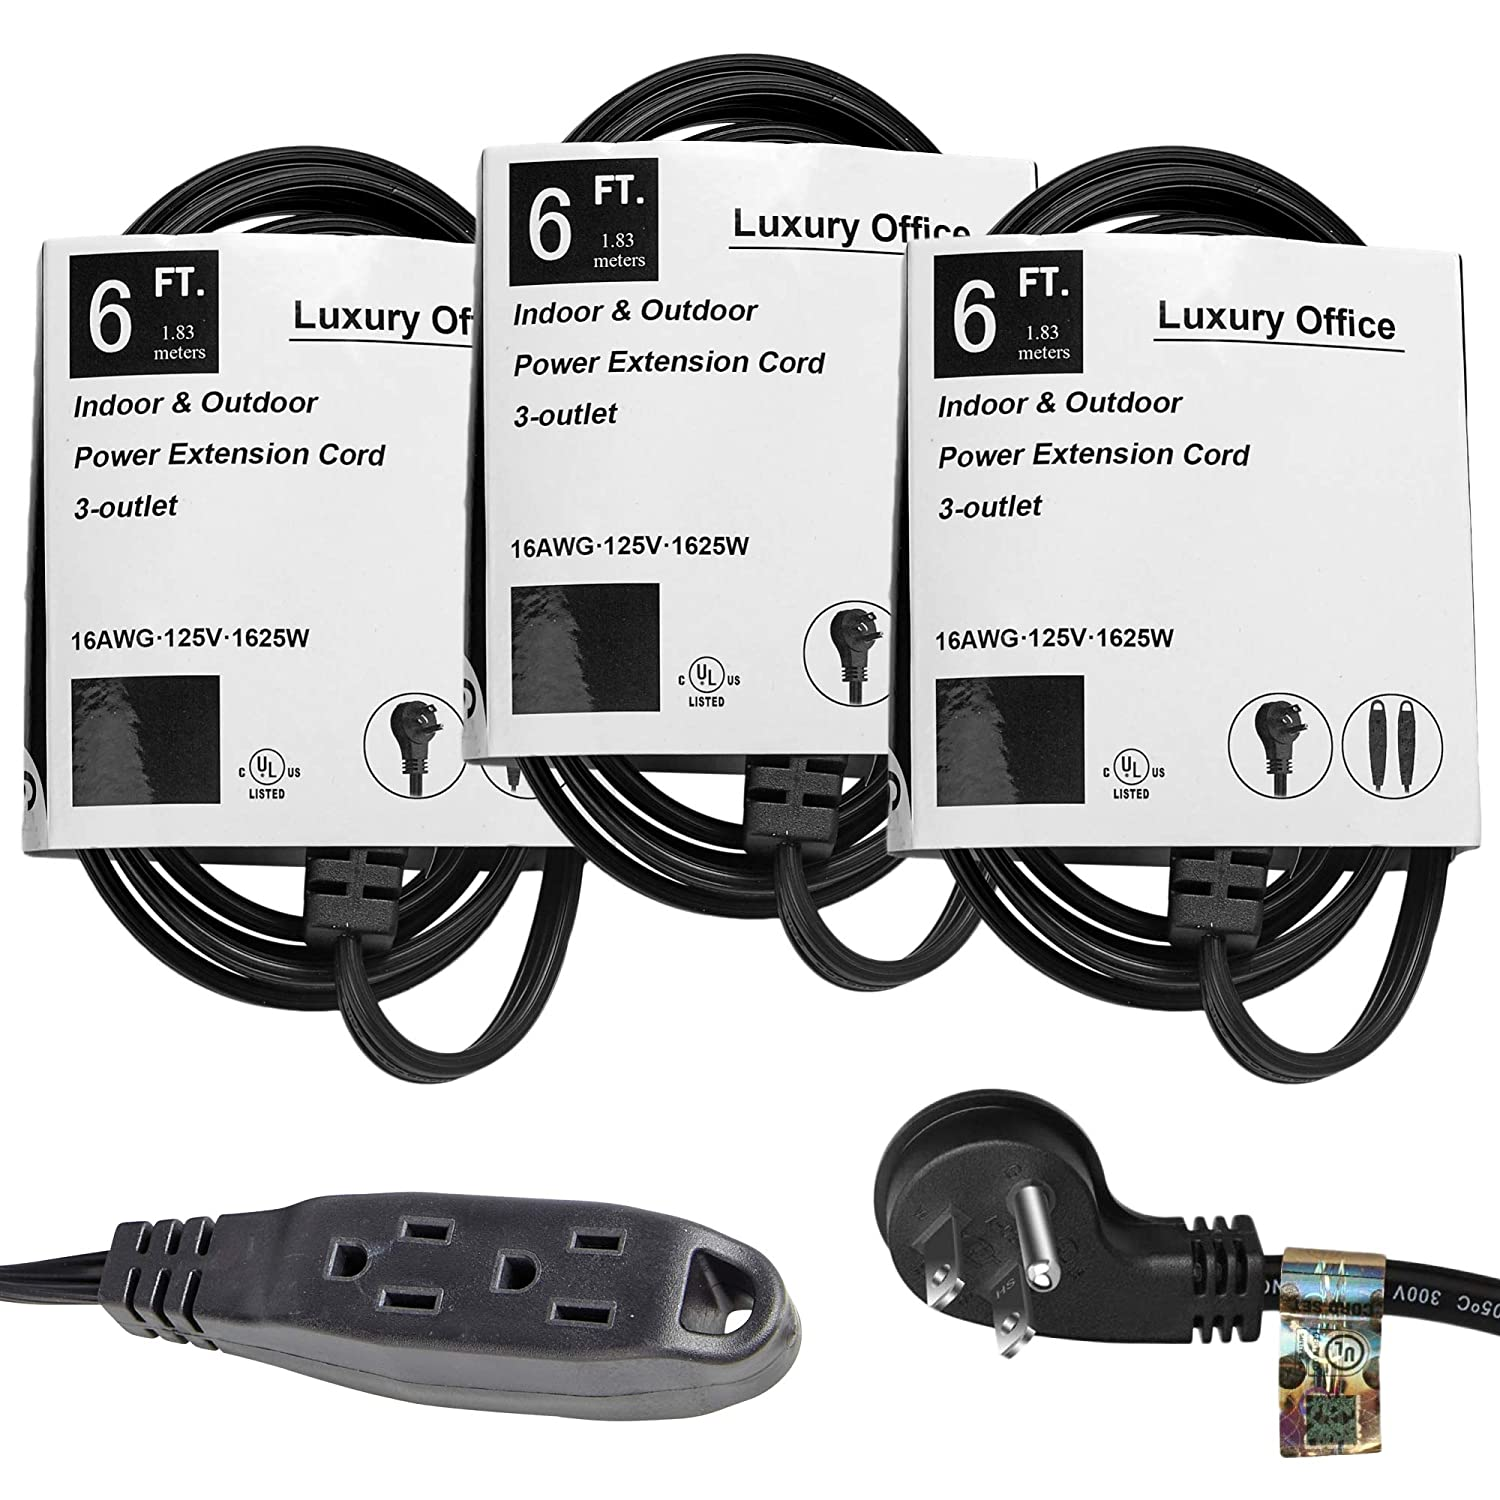 3 Way Power Splitter and 6' Extension Cord, 3 Pack With Angled Plug - 1 to 3 Cable Strip With 3 Pronged Outlets and Long Y Style Wire – Black - SJT 16 AWG – By Luxury Office